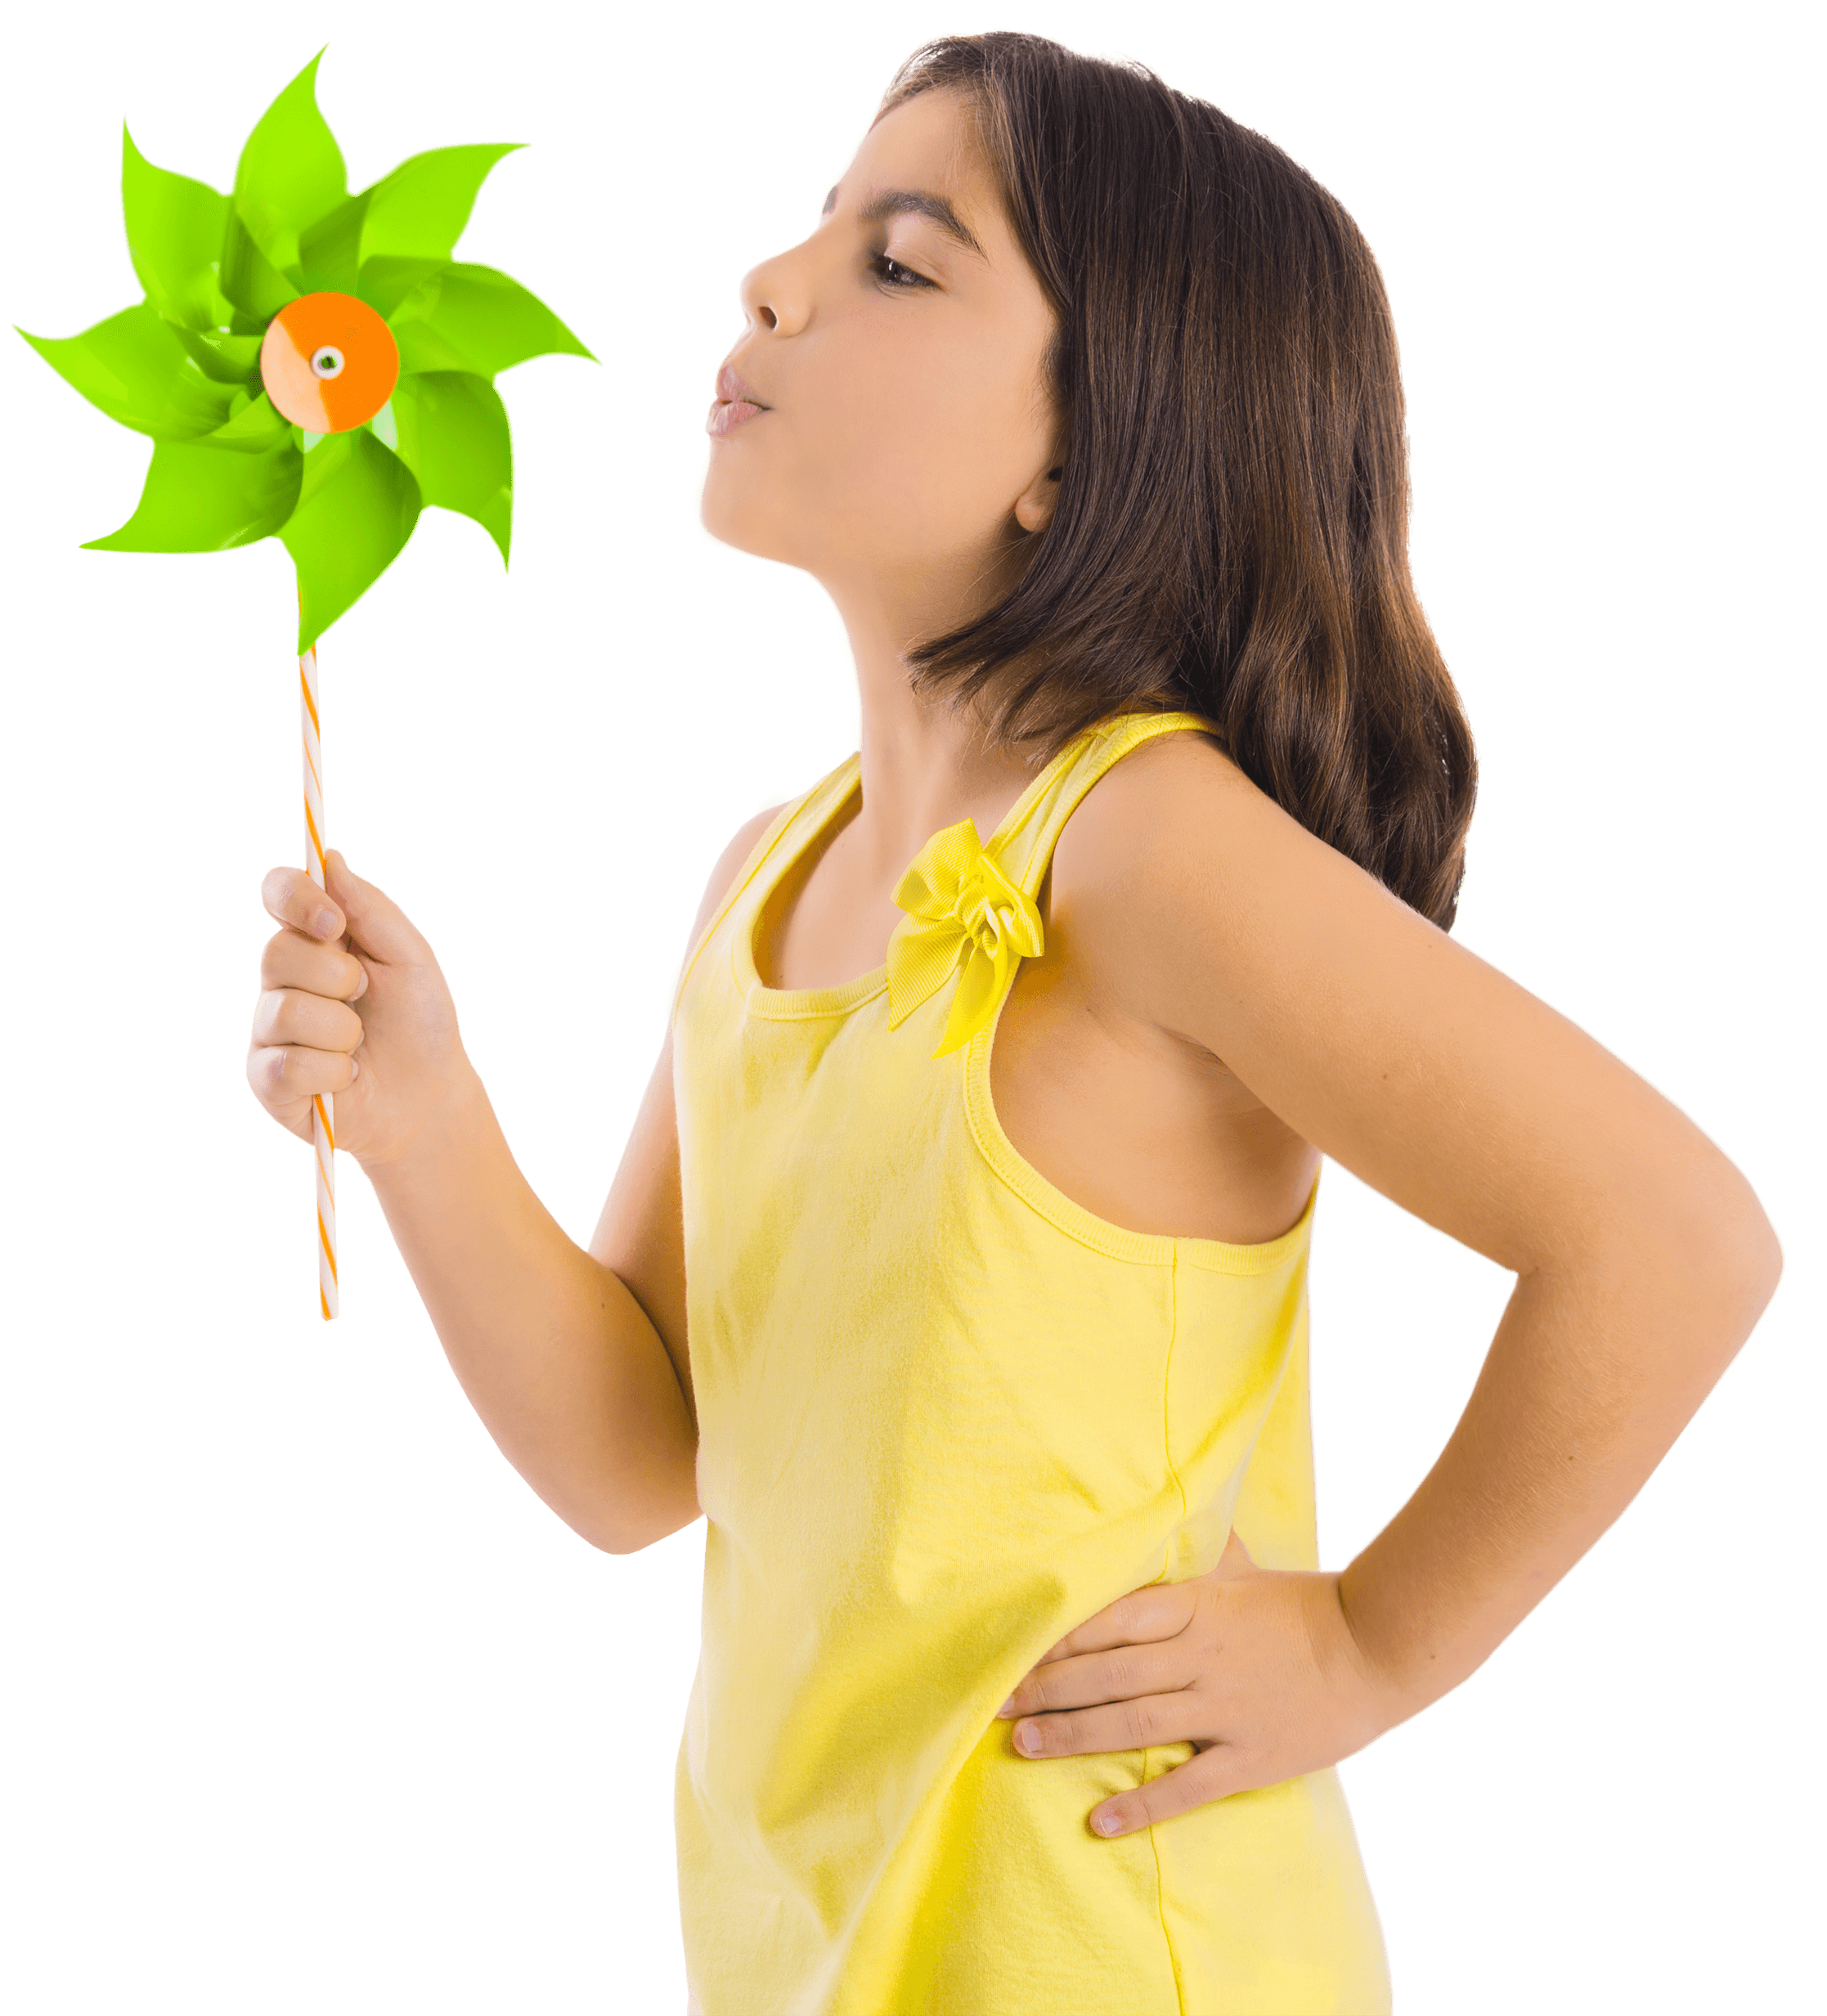 Girl with yellow shirt with pinwheel